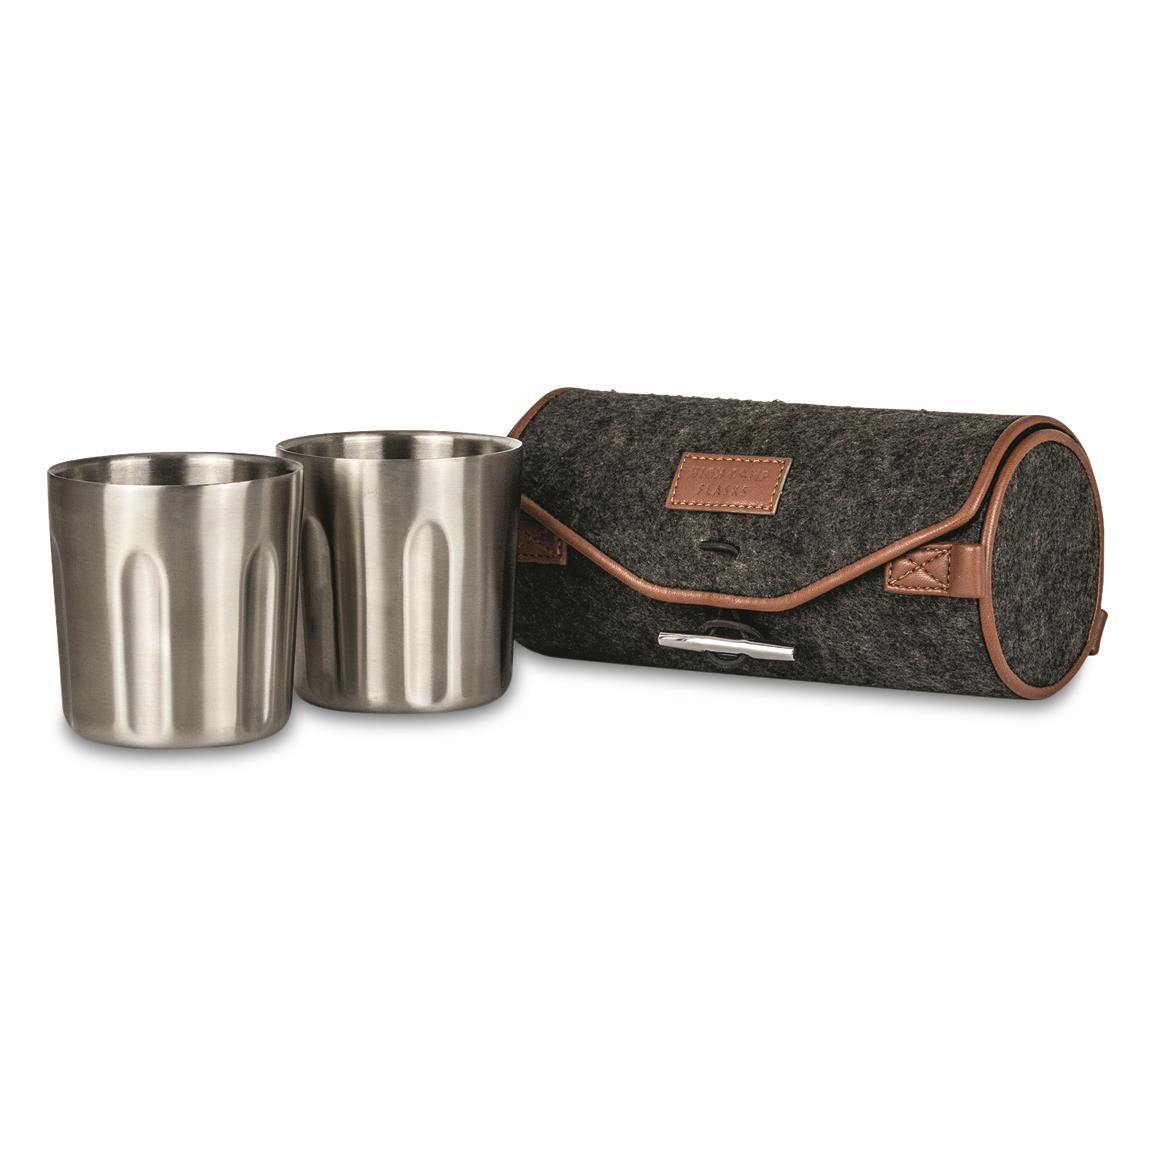 High Camp Flasks Firelight Tumbler Set, 2 Pack